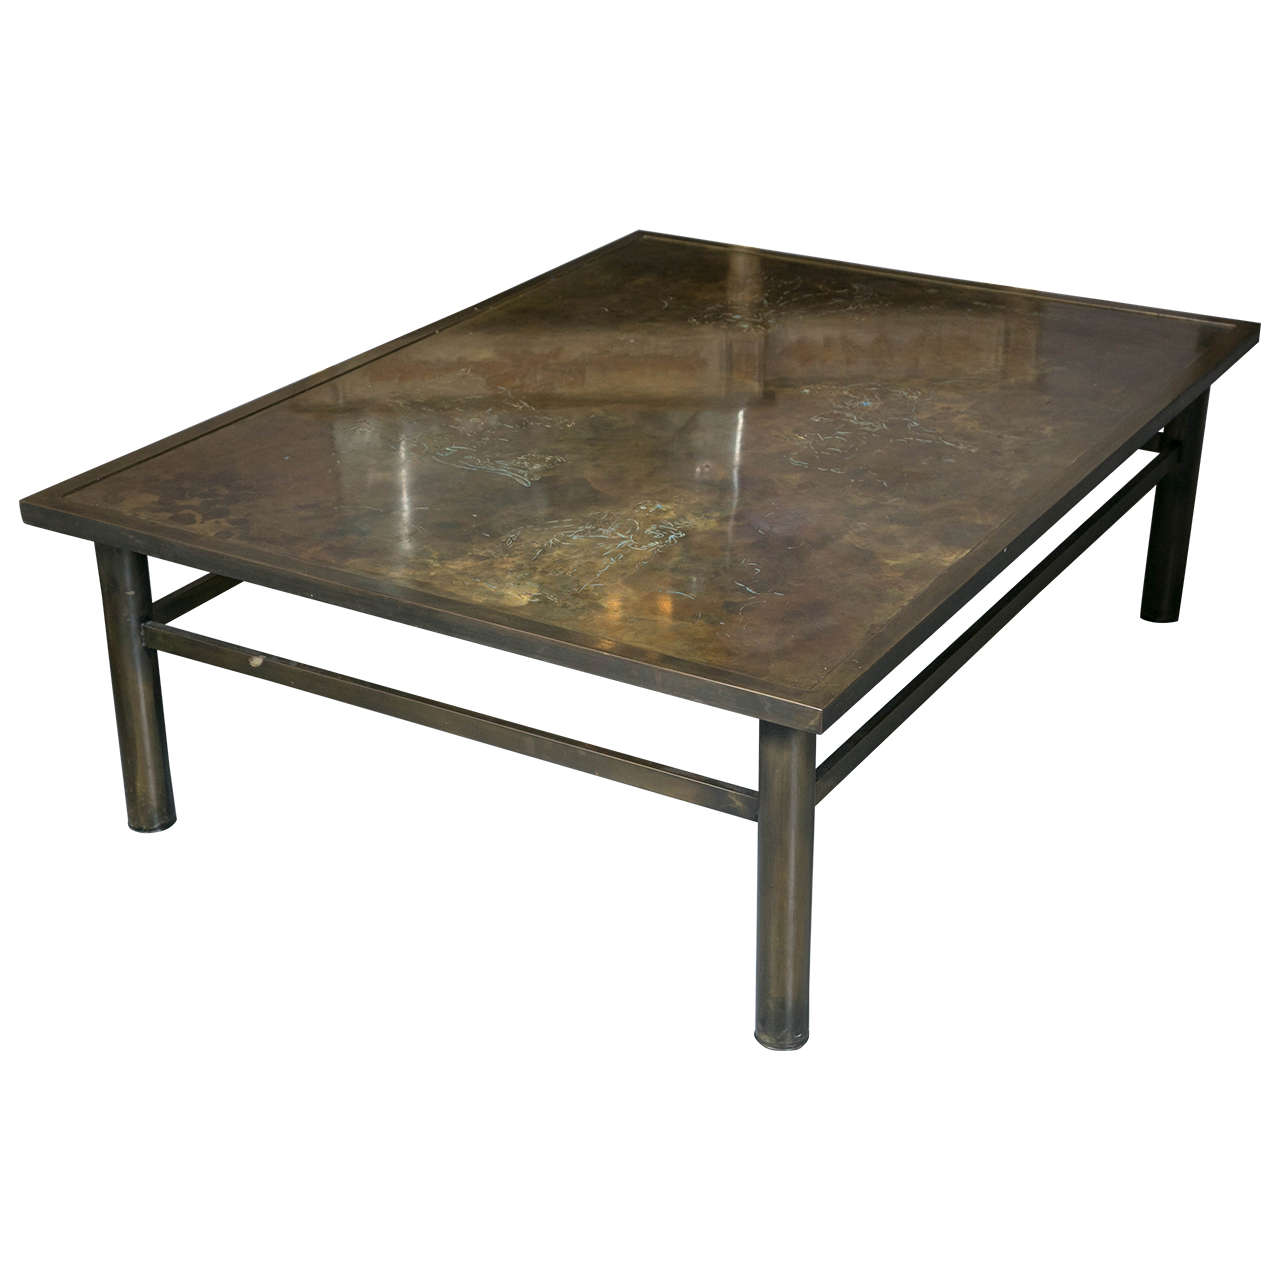 Philip U0026 Kelvin Laverne Acid Etched Bronze Zodiac Coffee Table 1